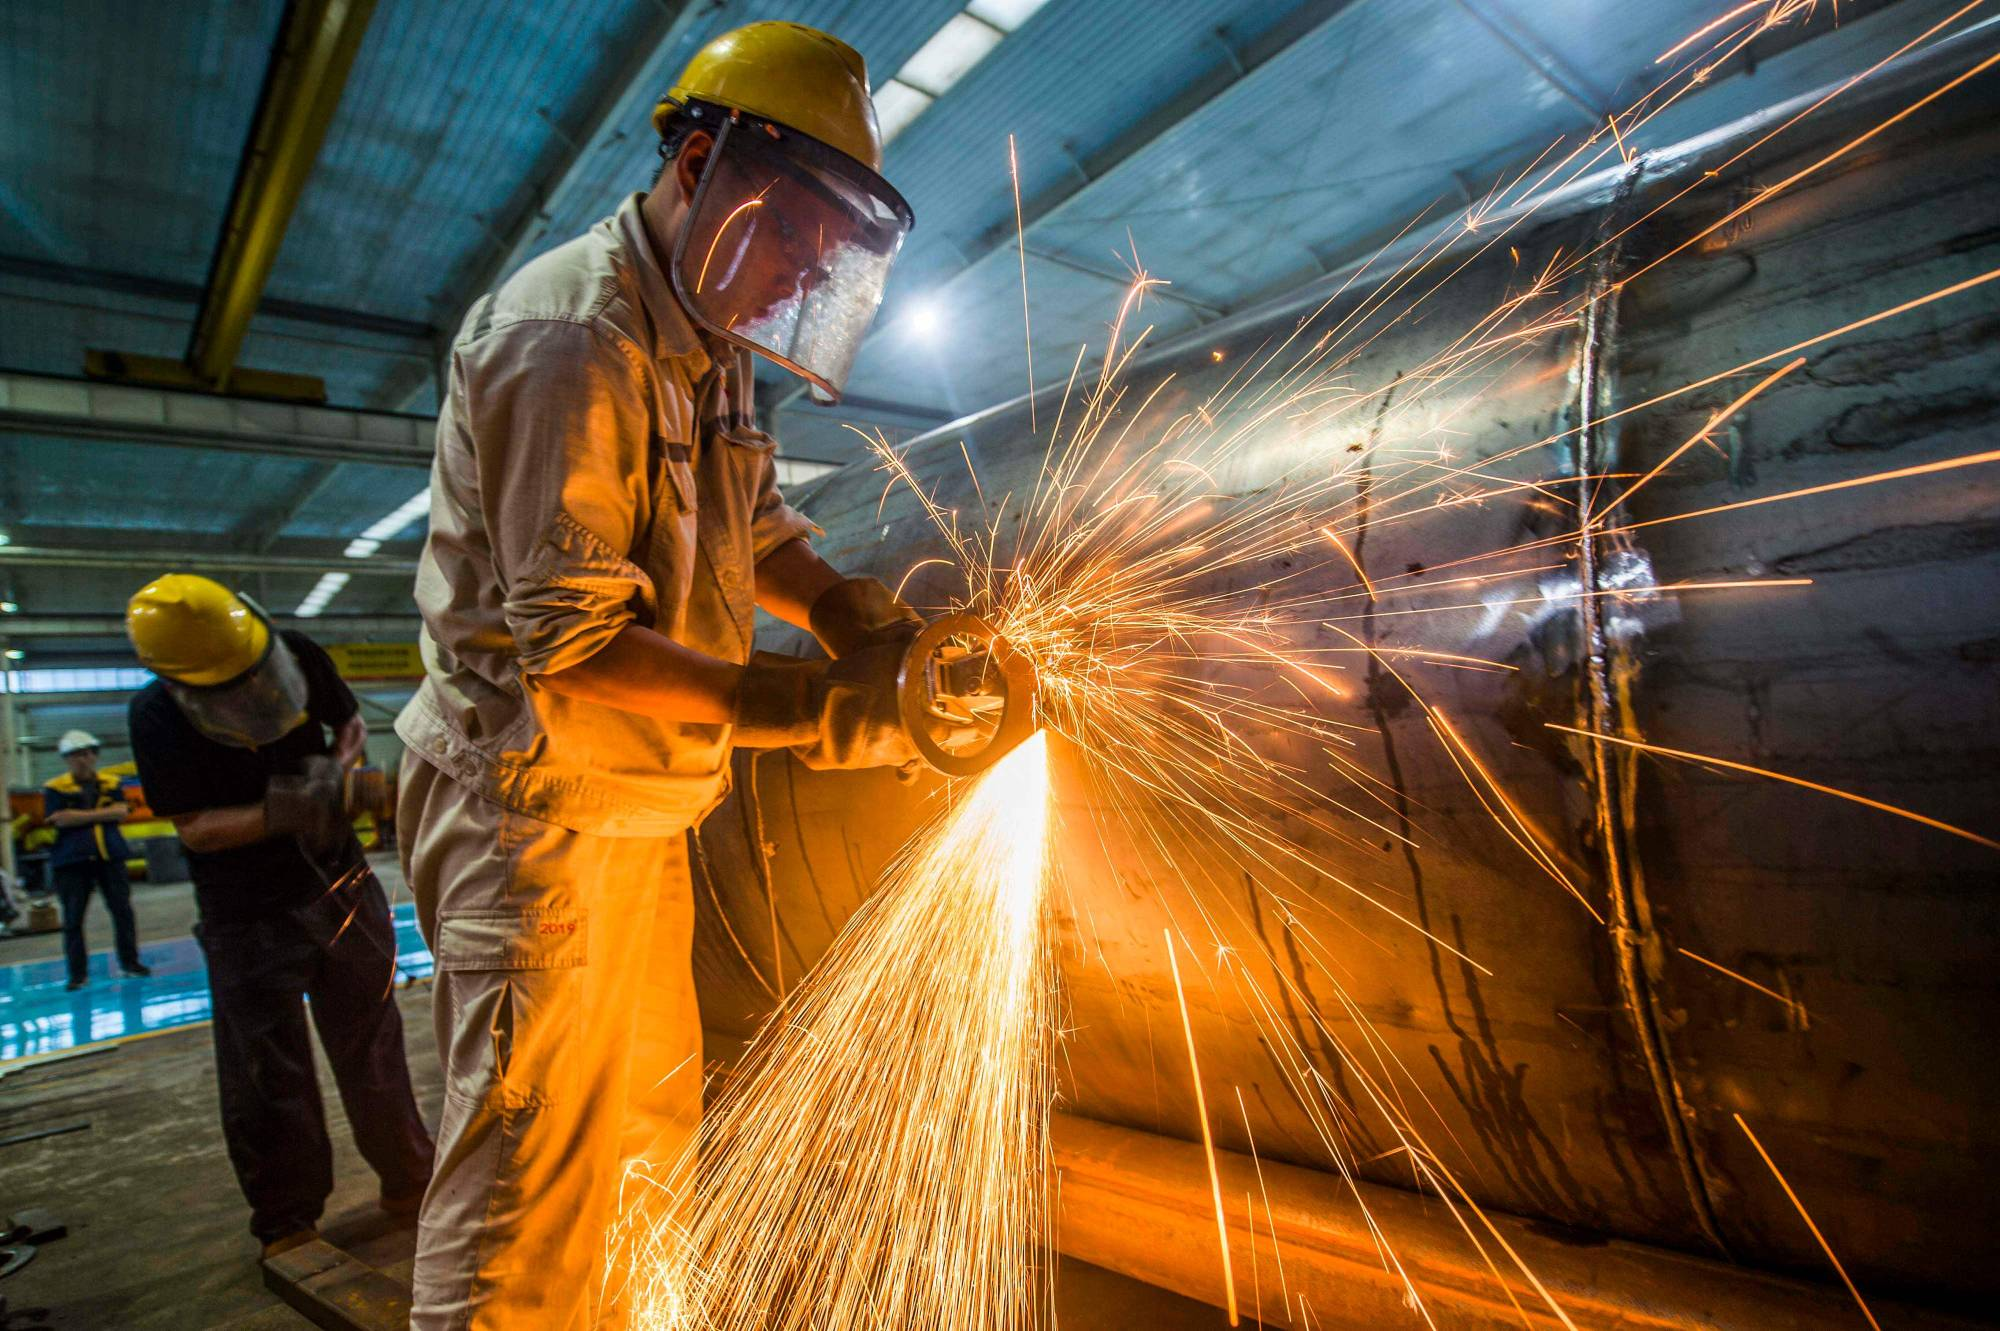 A worker welds medal truck parts at a factory in Weifang in China's eastern Shandong province. President Xi Jinping's new economic plan is for a more self-reliant domestic economy to serve as China's main growth driver, supplemented by foreign technologies and investment. | AFP-JIJI